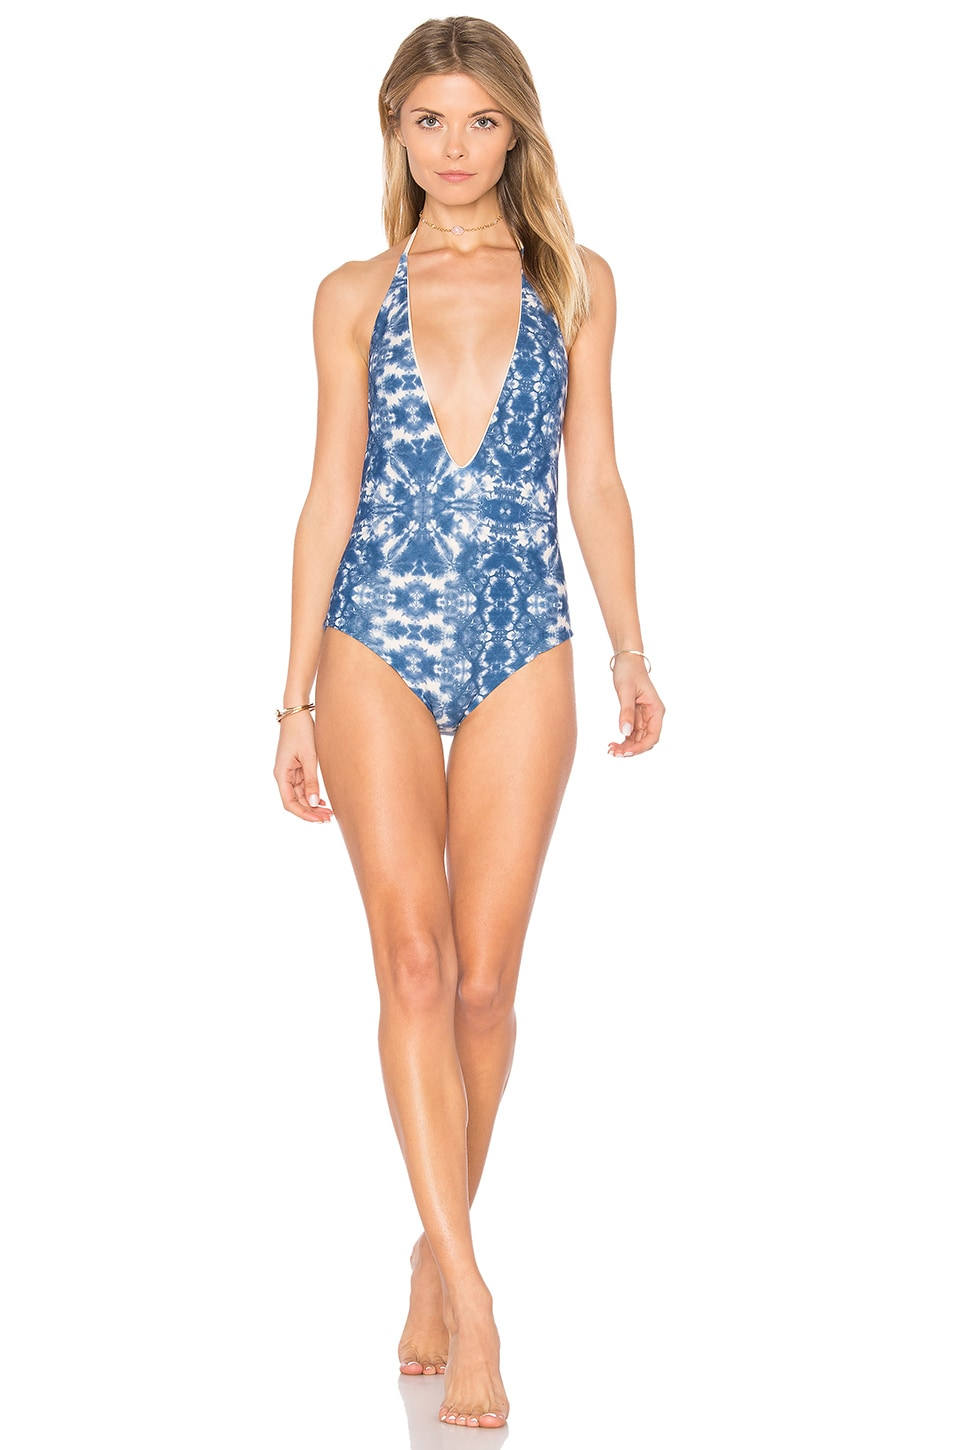 ARROW & EVE Skylar Reversible One Piece in Naked Ocean & Naked